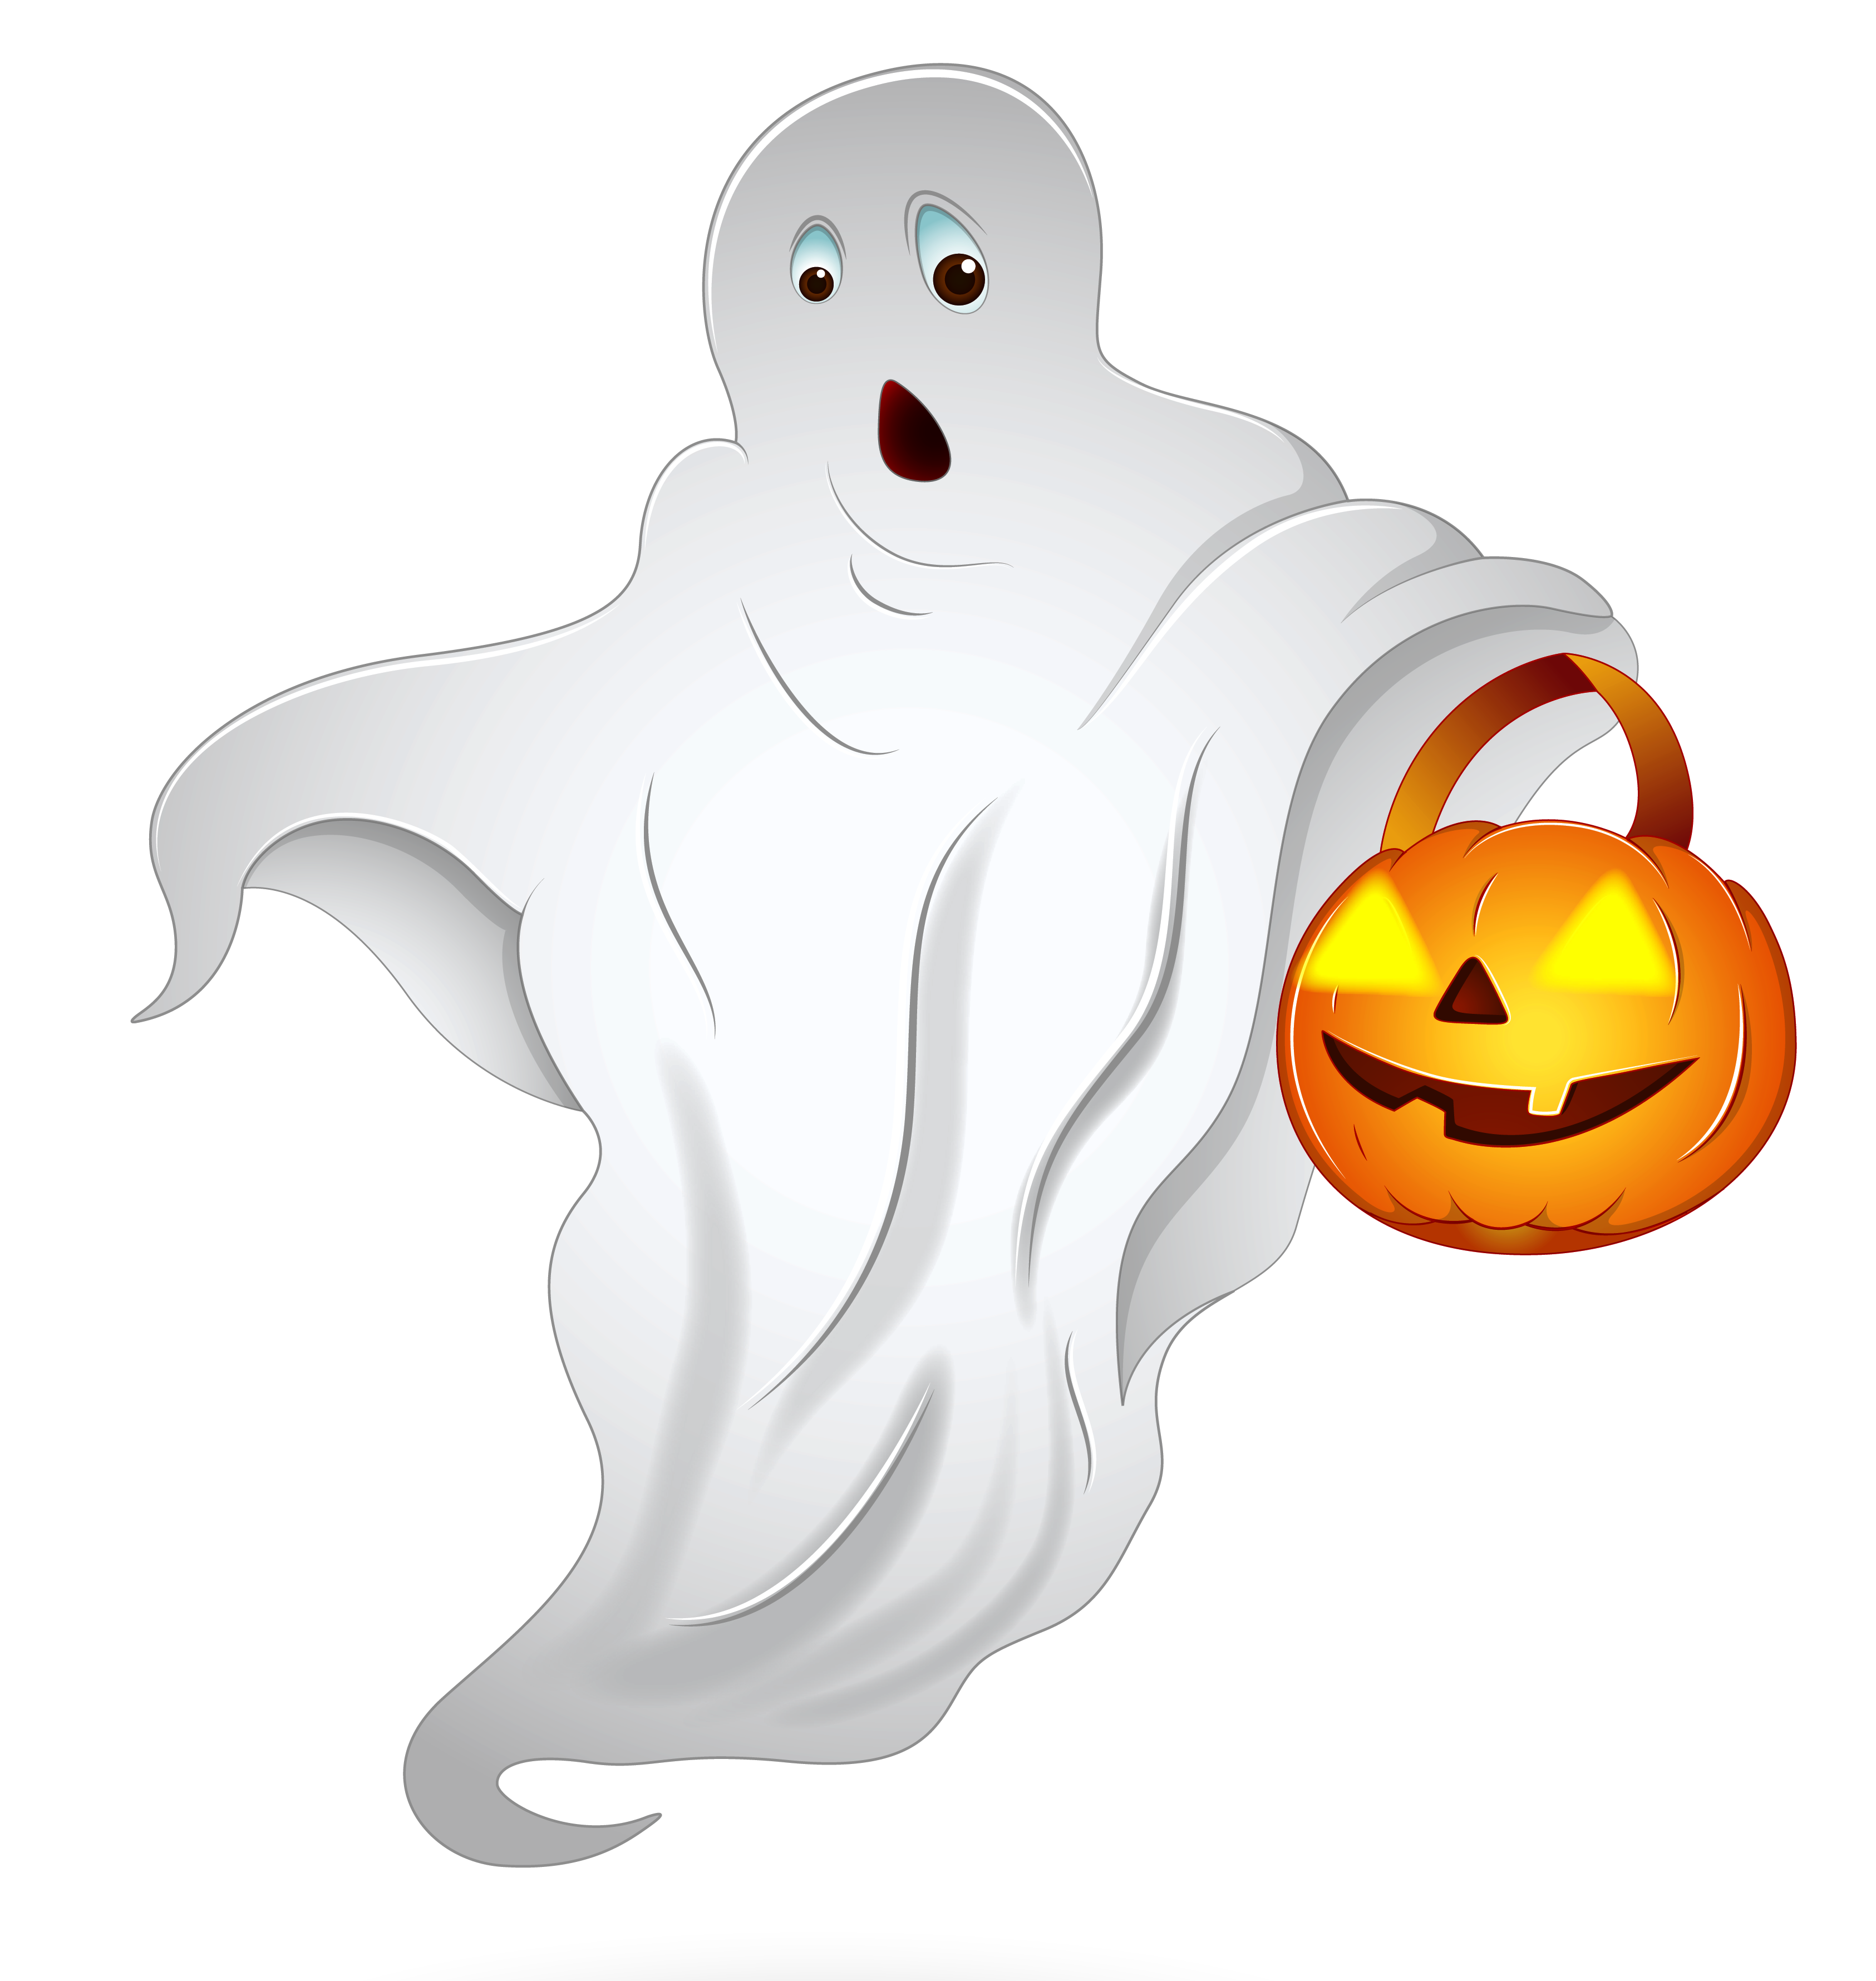 Ghost clipart character. Halloween with pumpkin basket